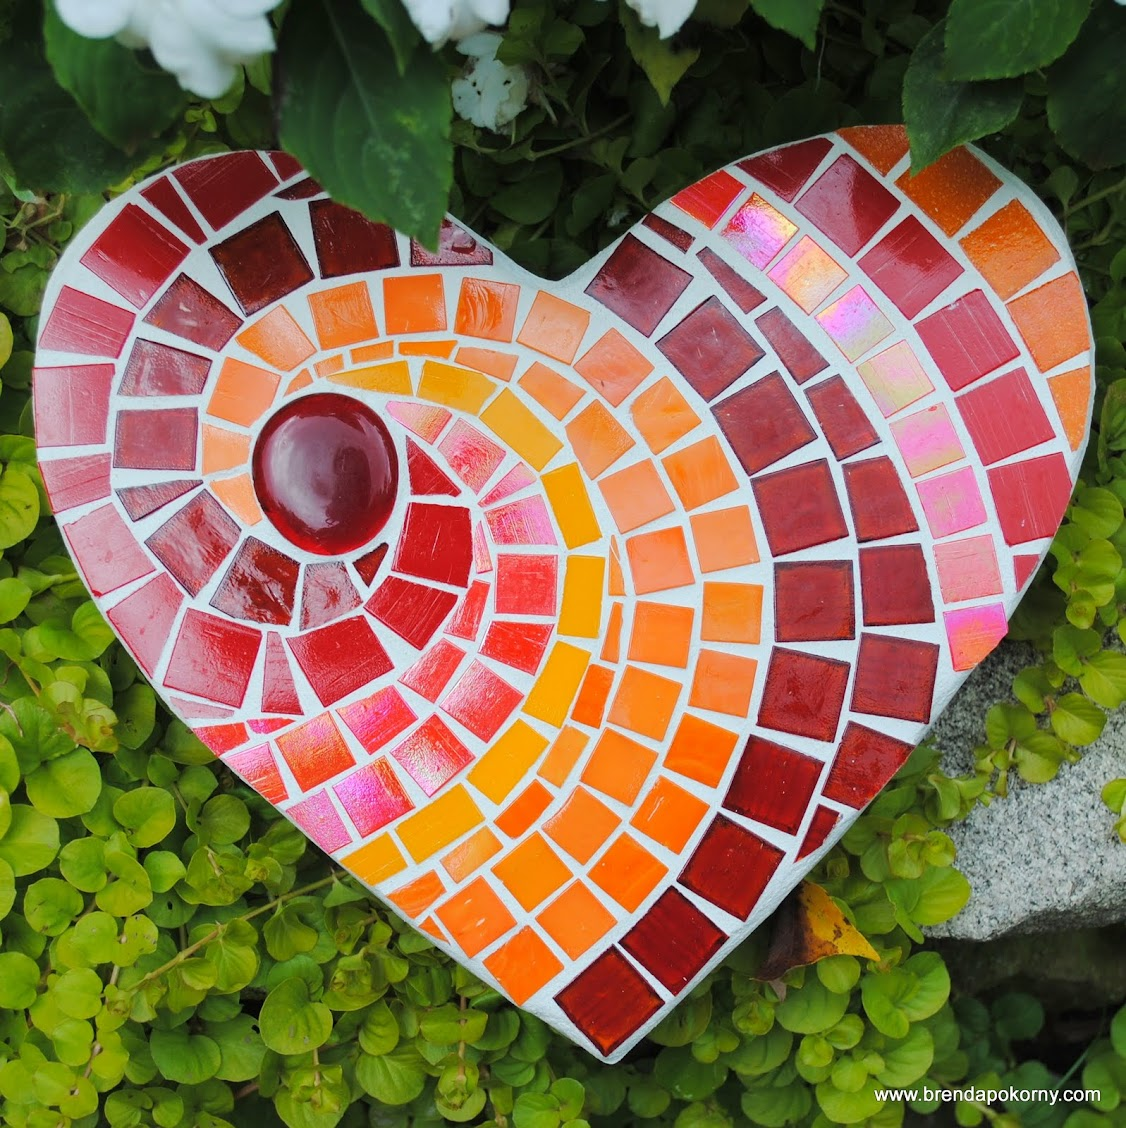 Hot Hot Heart Mosaic Stepping Stone Moo5045 Beads Amp Pieces